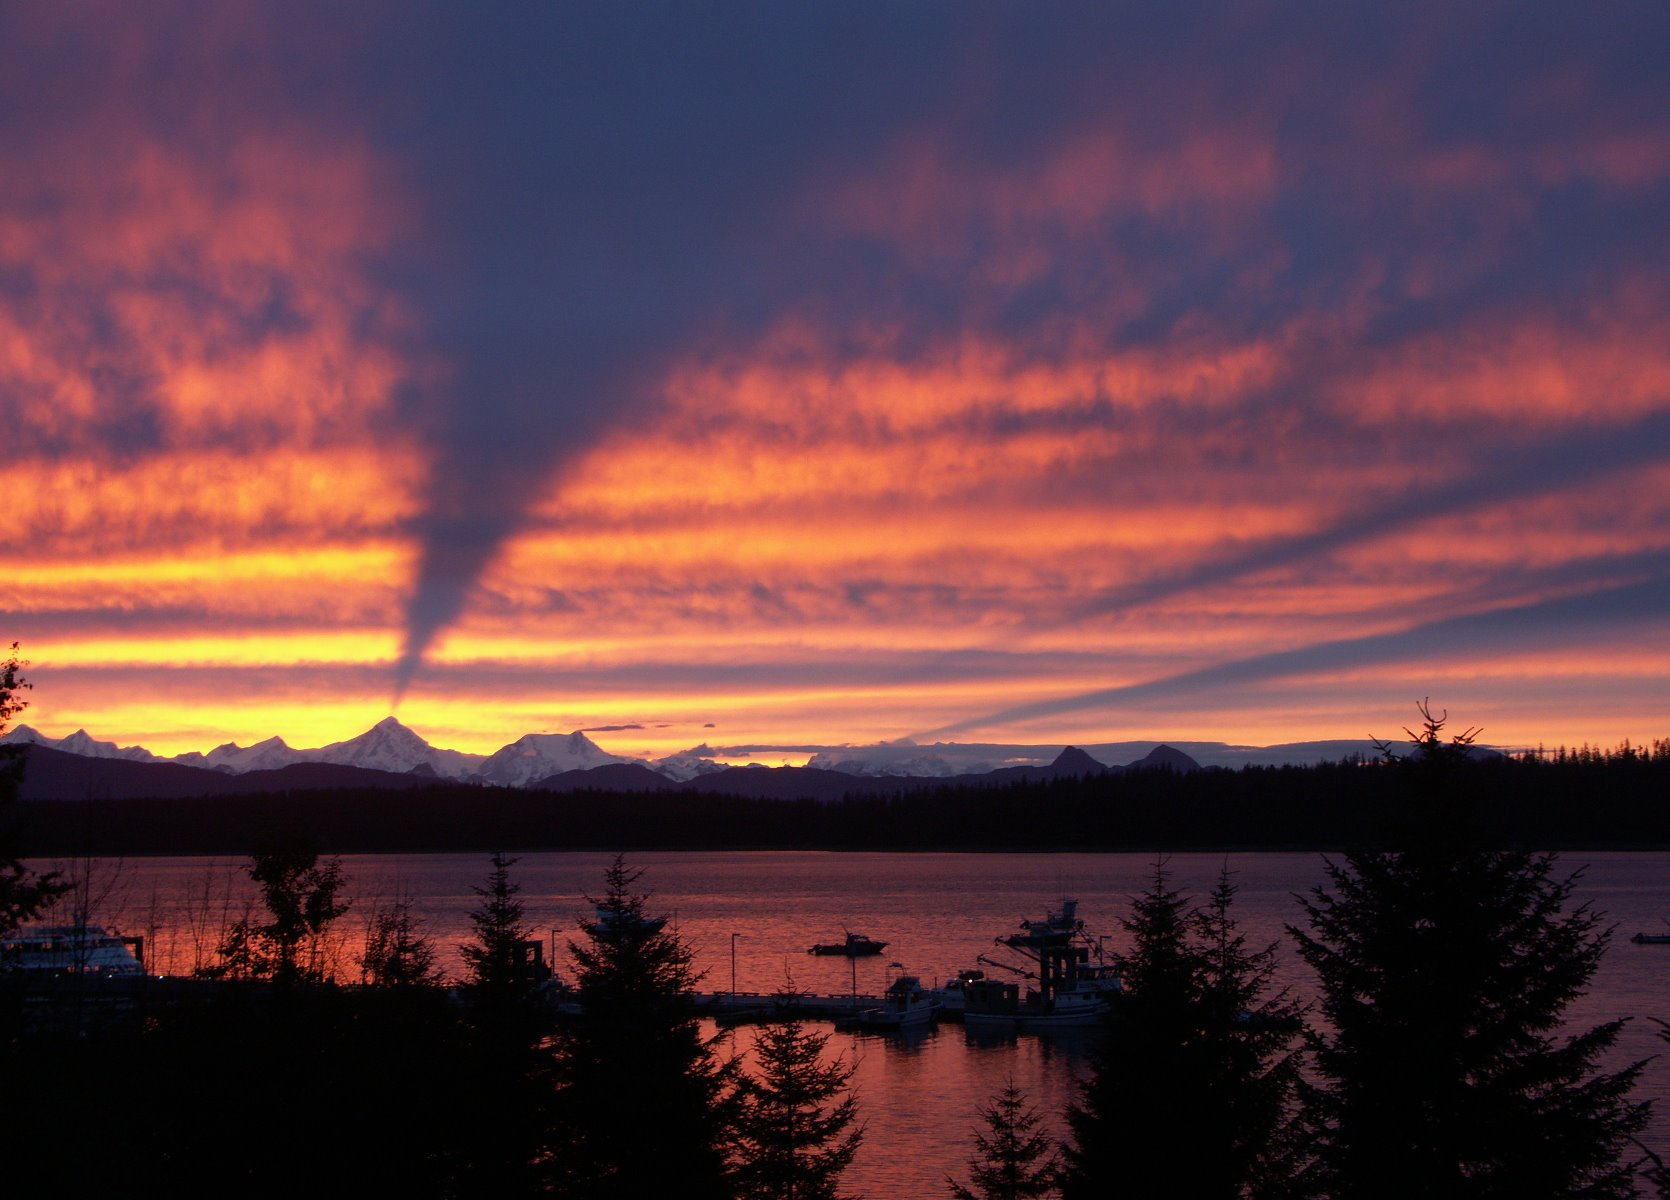 Sunset from Bartlett Cove with the Fairweather Mountains in the background.